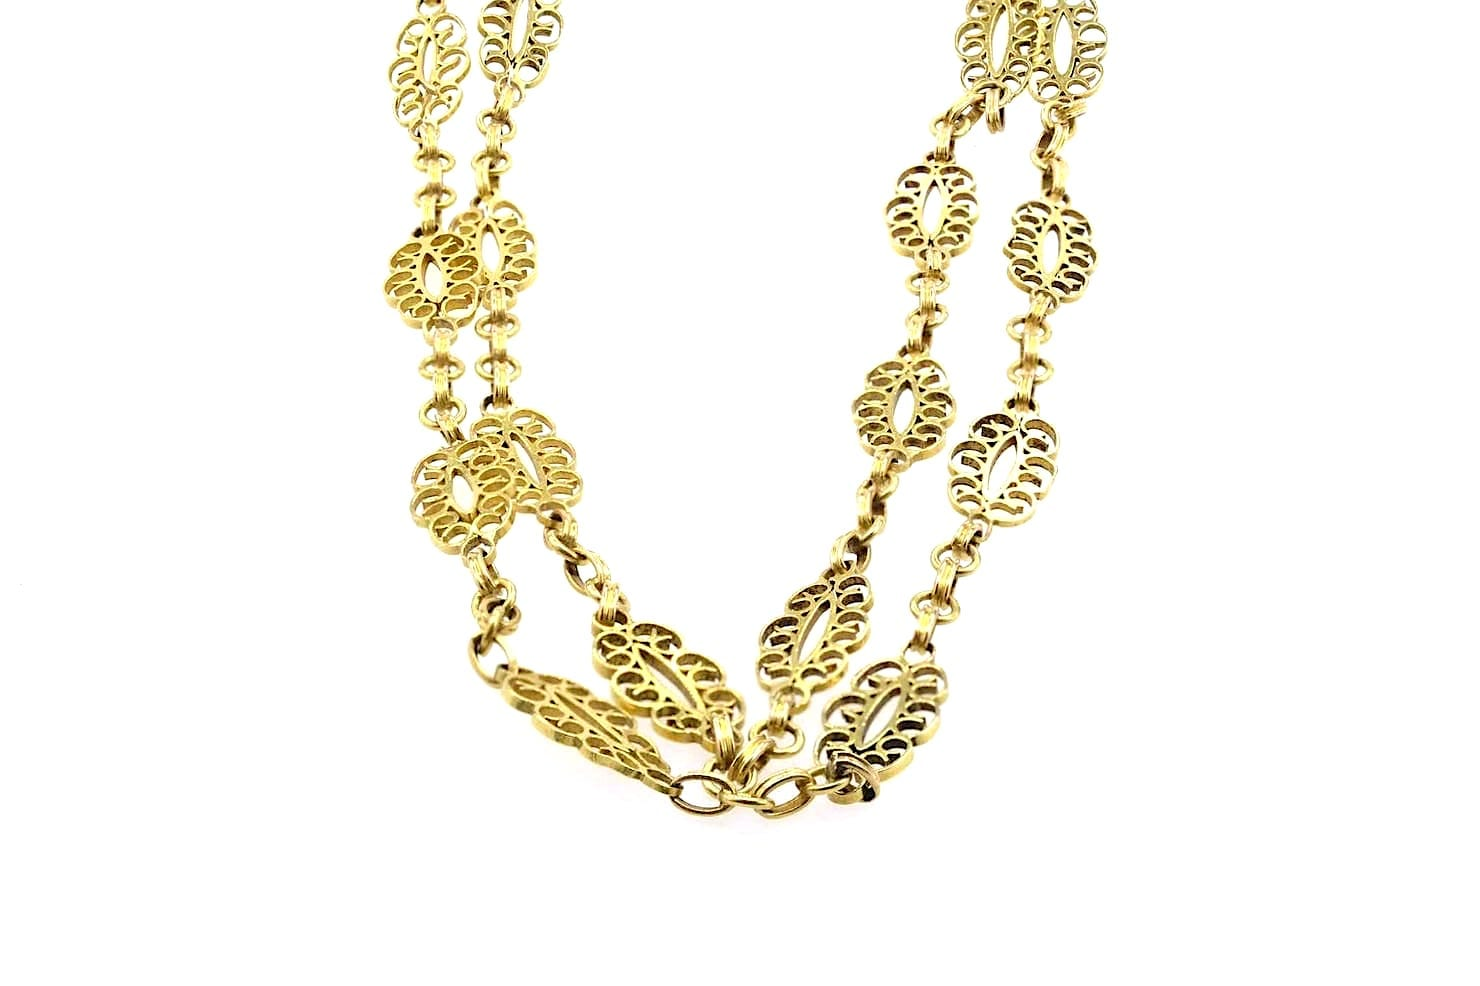 collier ancien en or jaune 18k